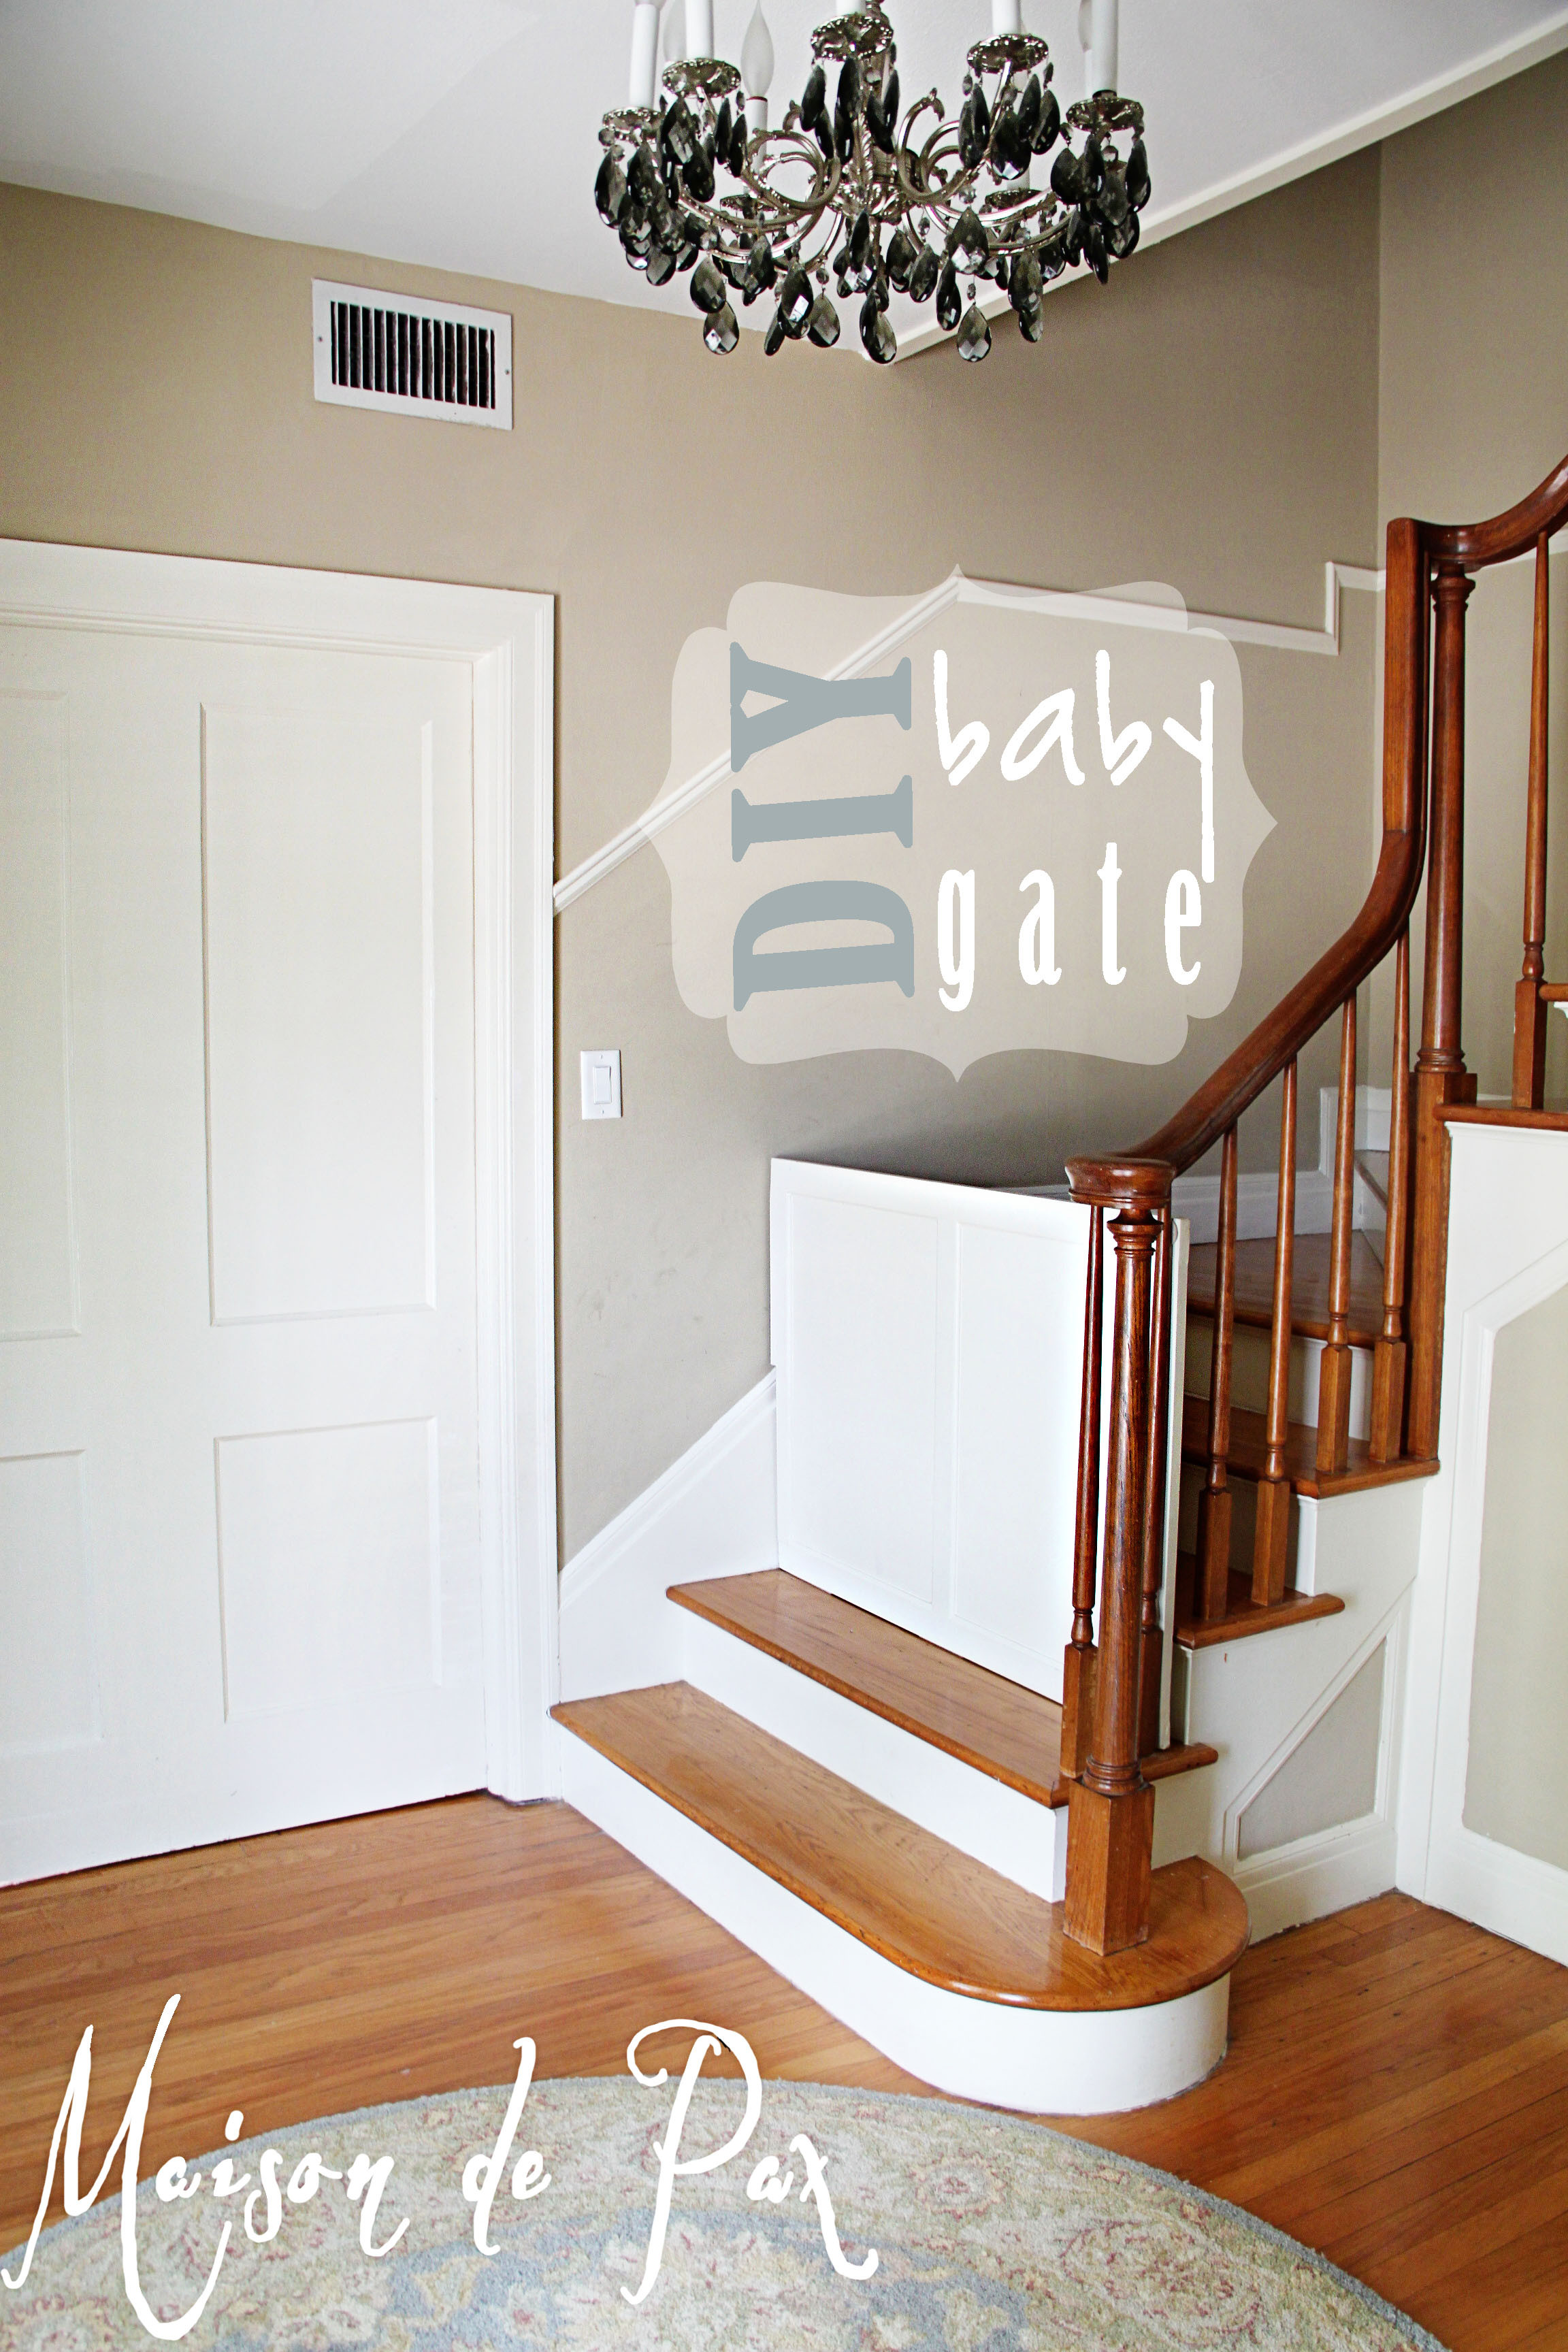 Best ideas about DIY Retractable Baby Gate . Save or Pin DIY Classy Baby Gate Maison de Pax Now.